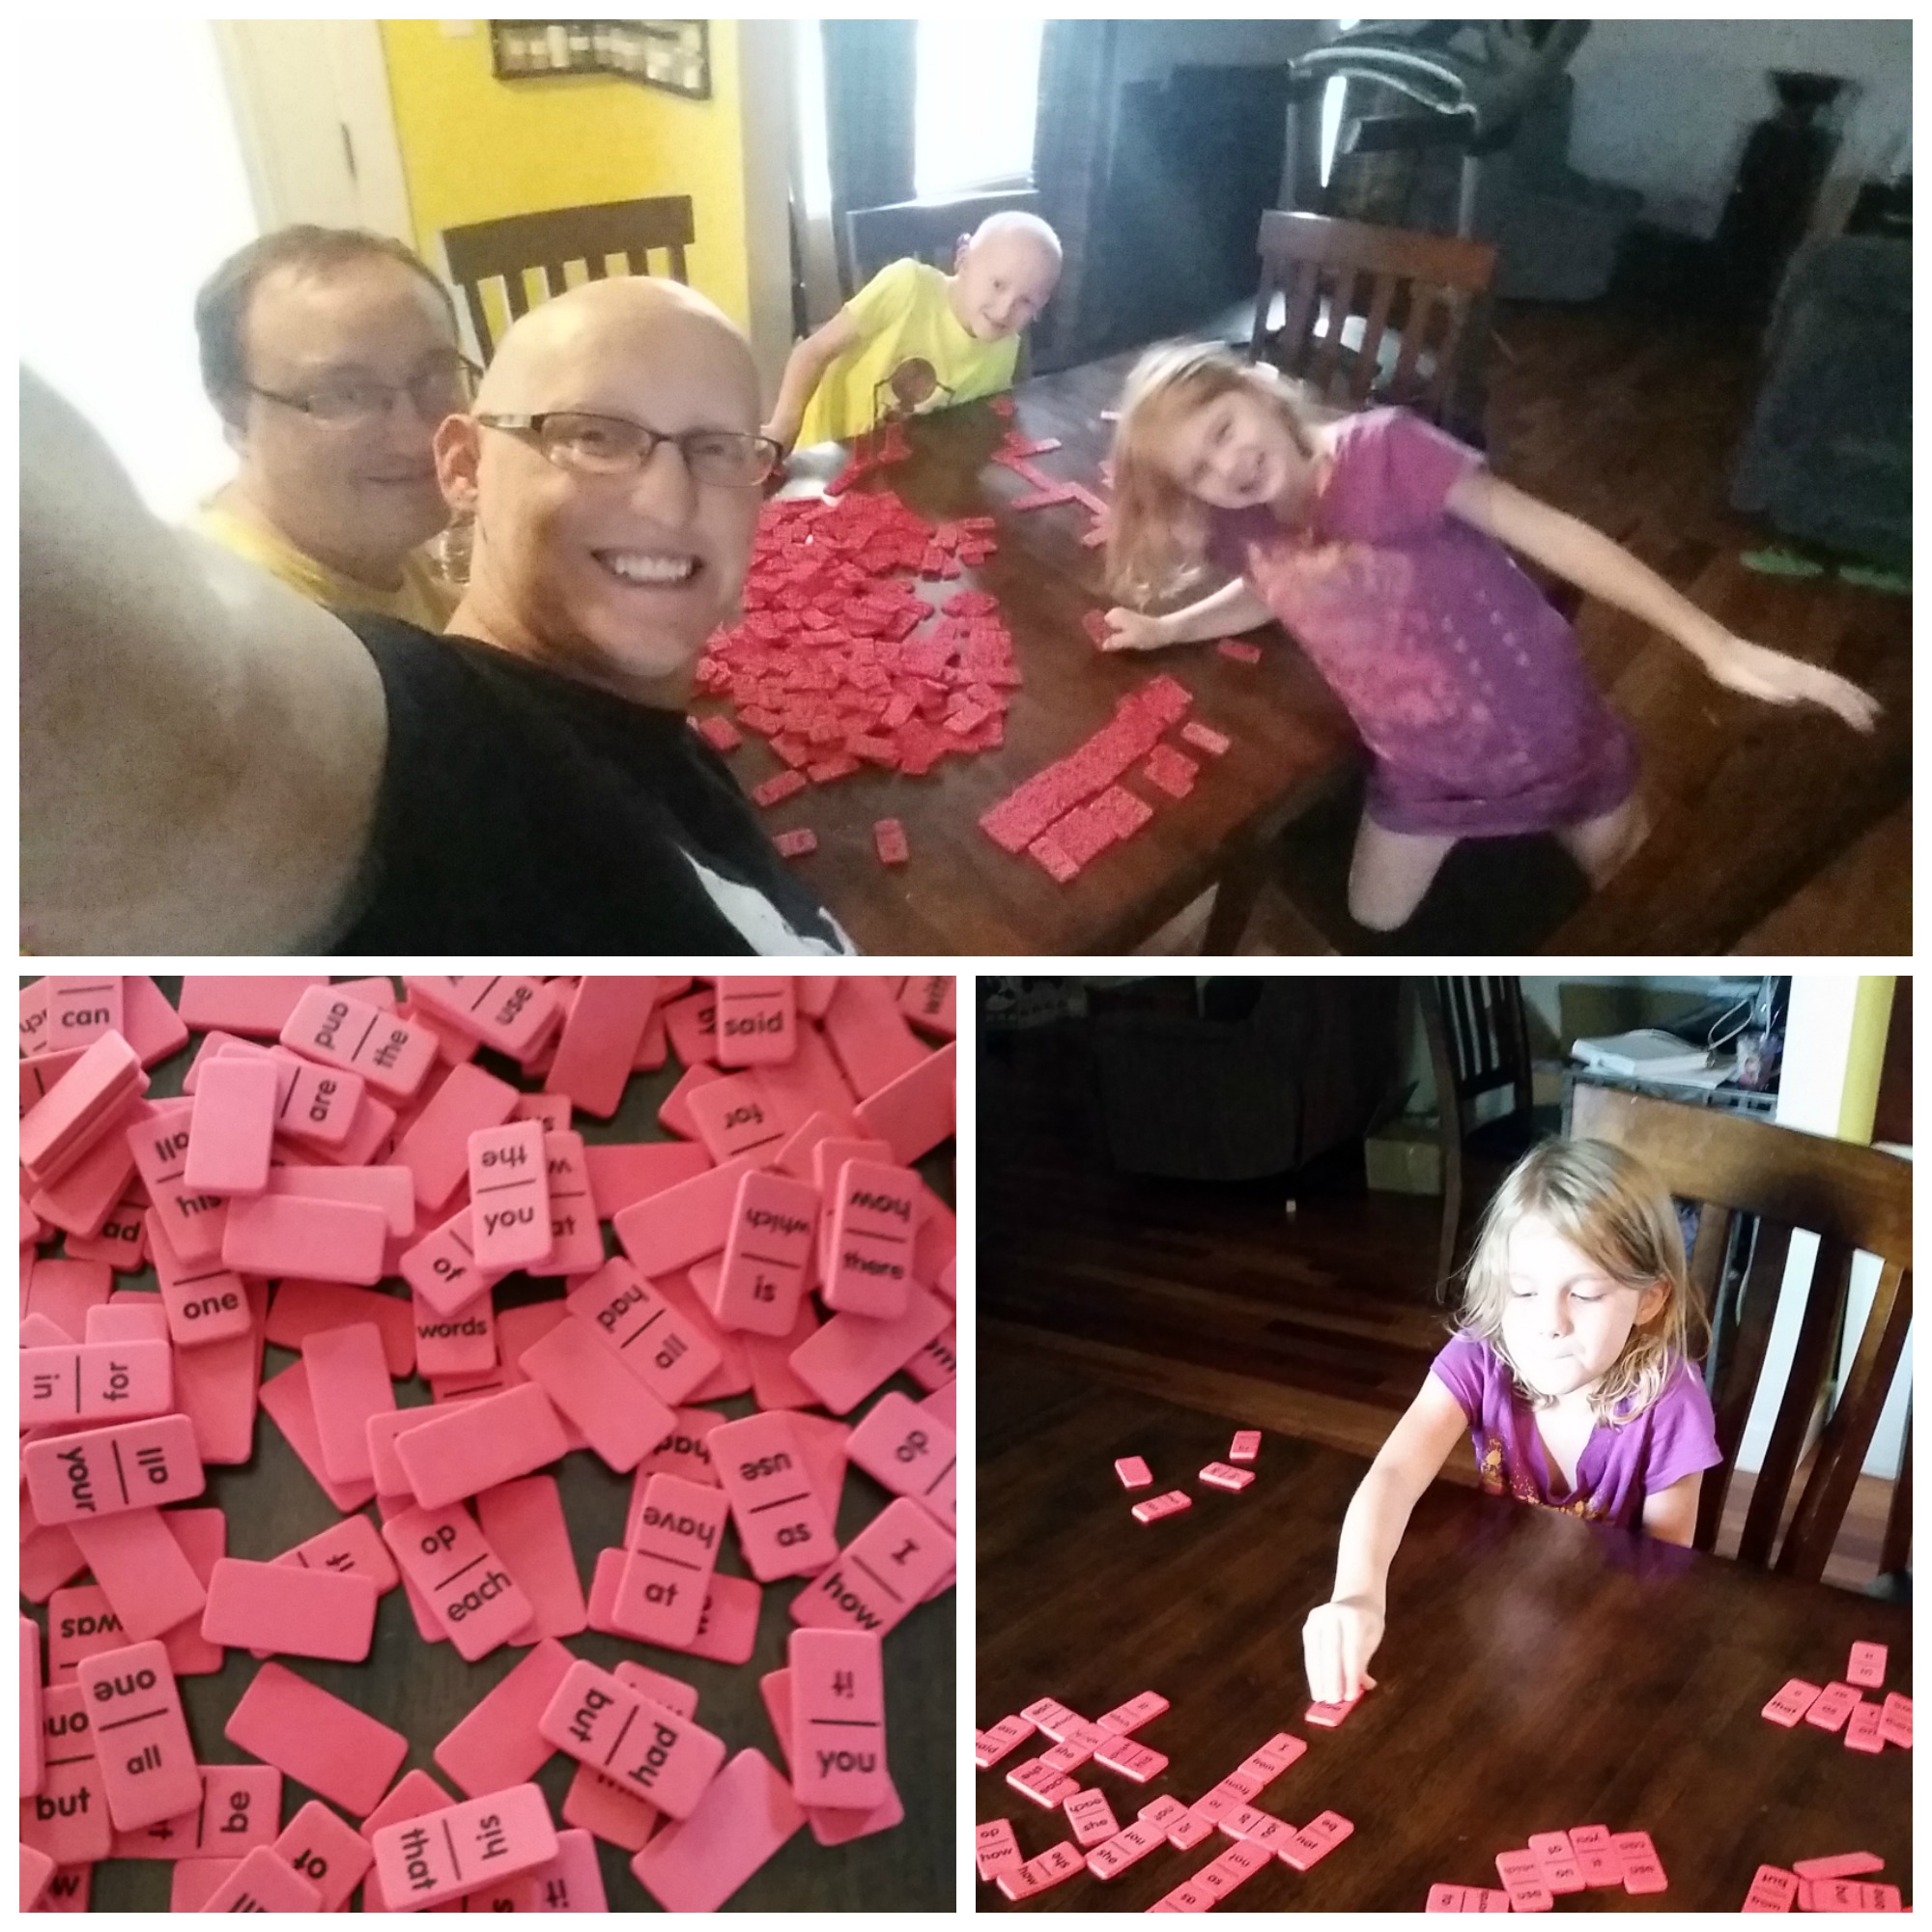 Playing sight word dominoes as a family